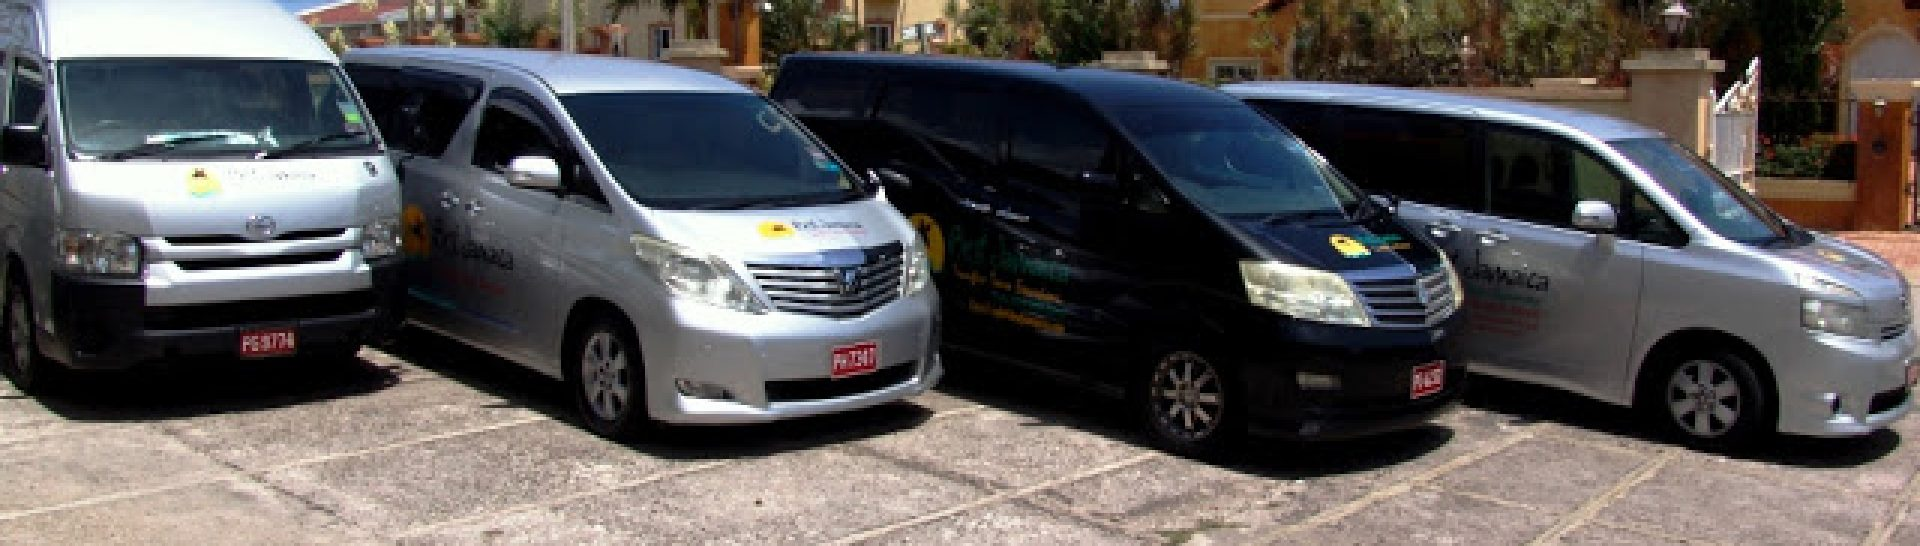 cropped-Airport-Taxi-Montego-Bay.jpg